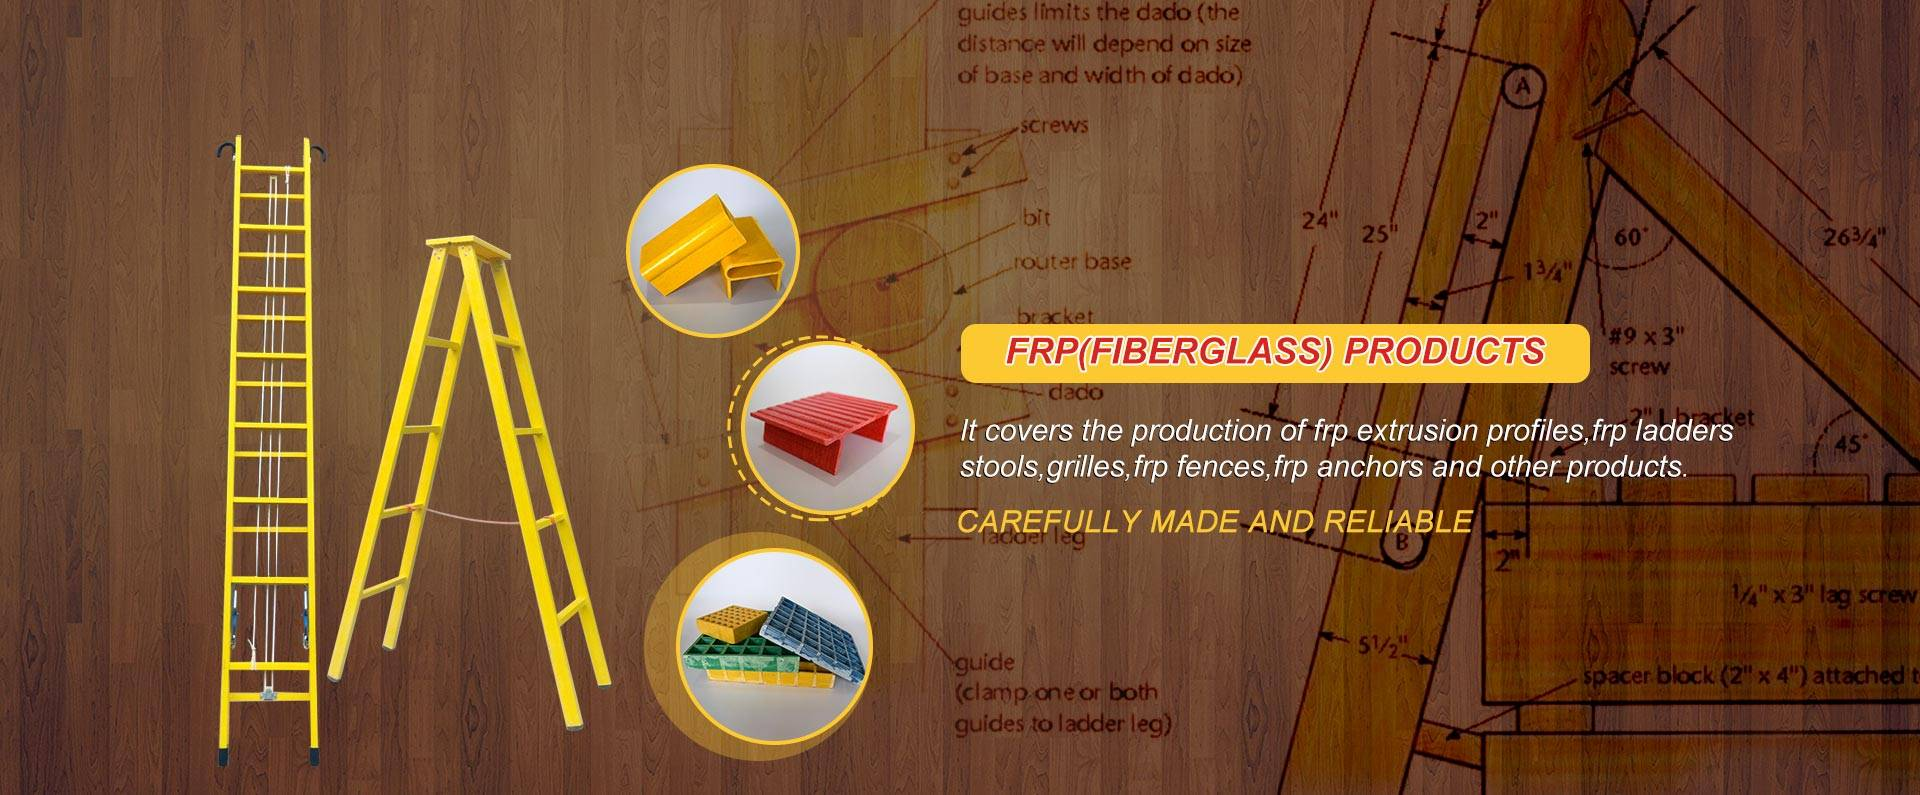 FRP(FIBERGLASS) PRODUCTS